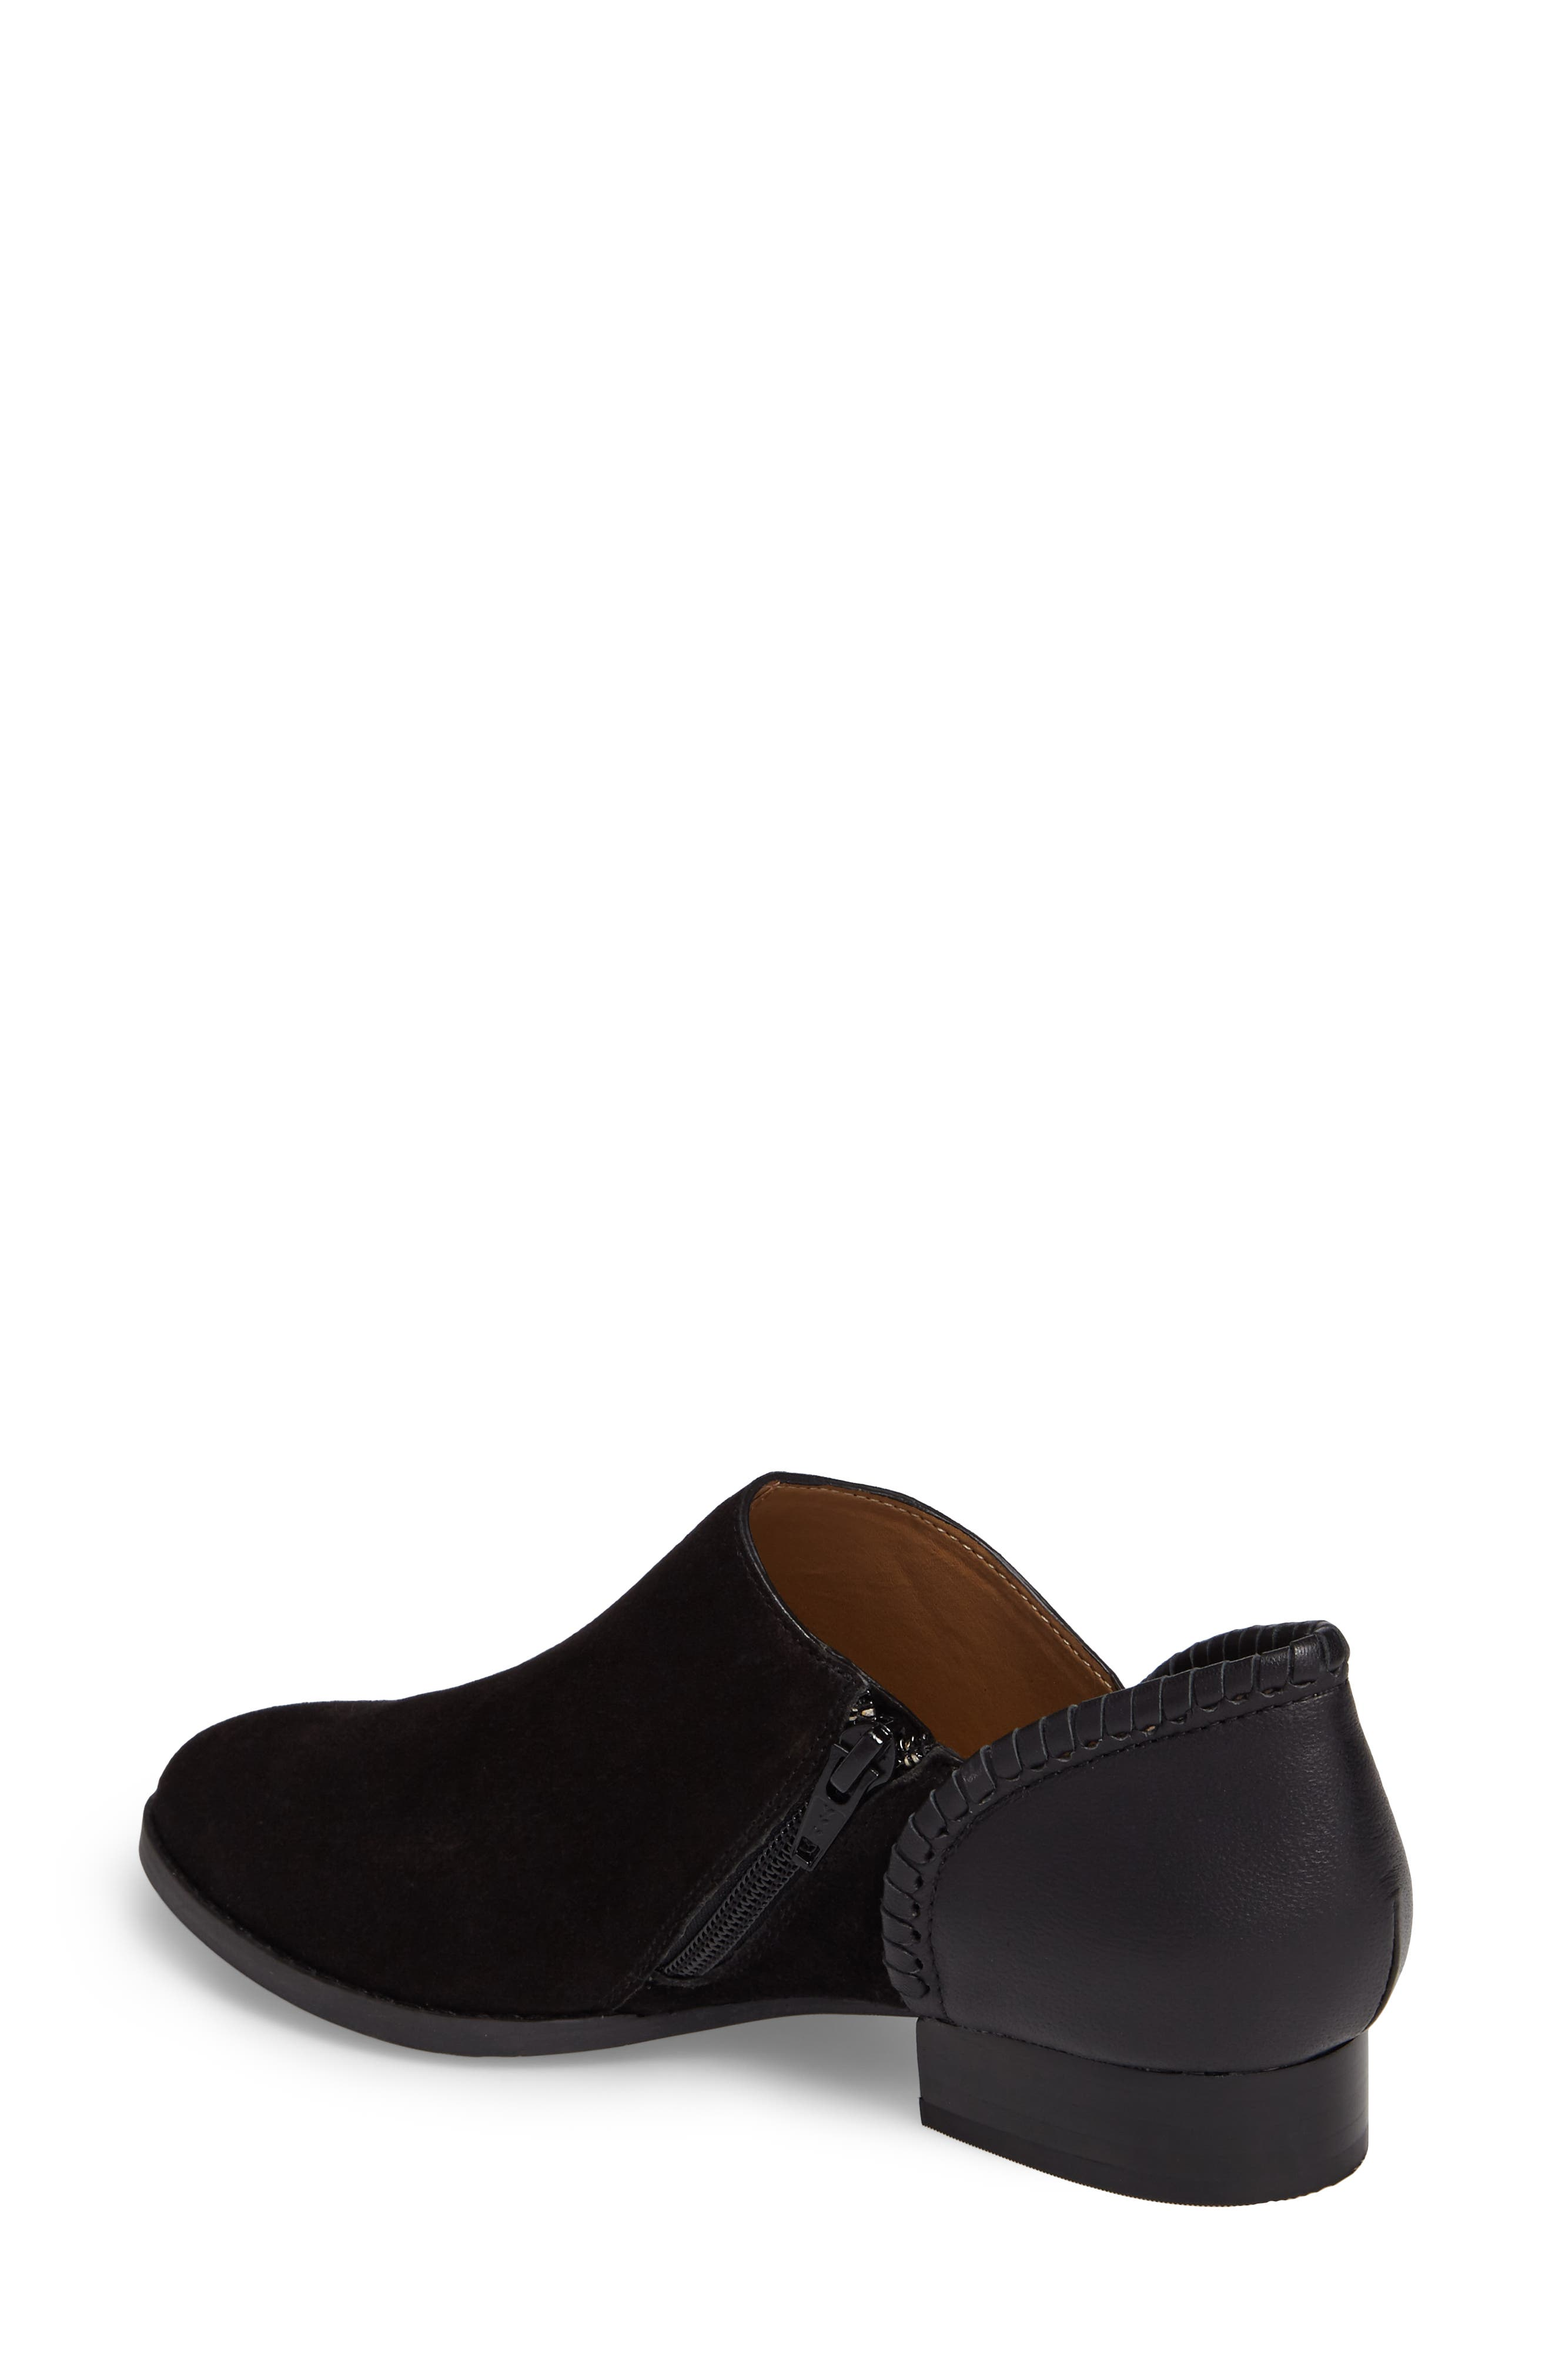 Avery Low Bootie,                             Alternate thumbnail 2, color,                             001